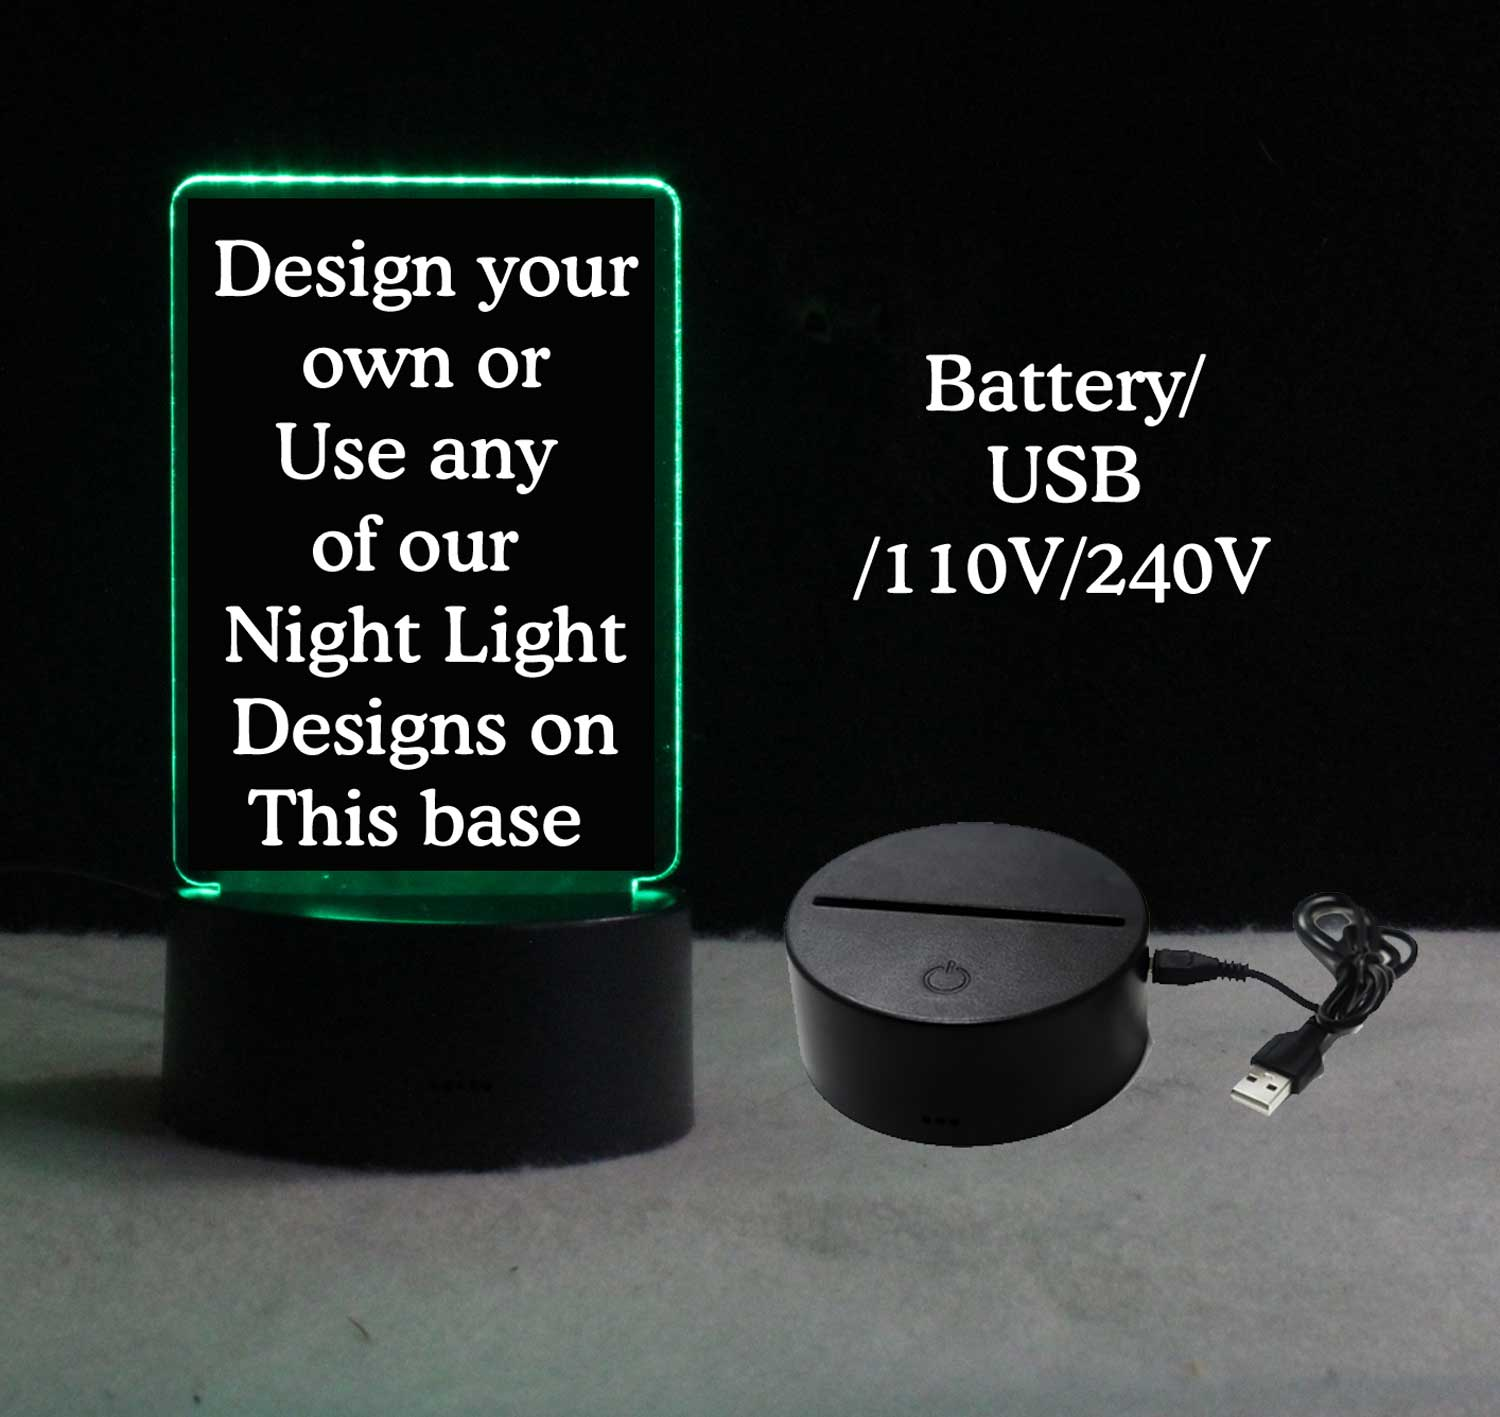 Personalized USB/110V/240V battery operated night light